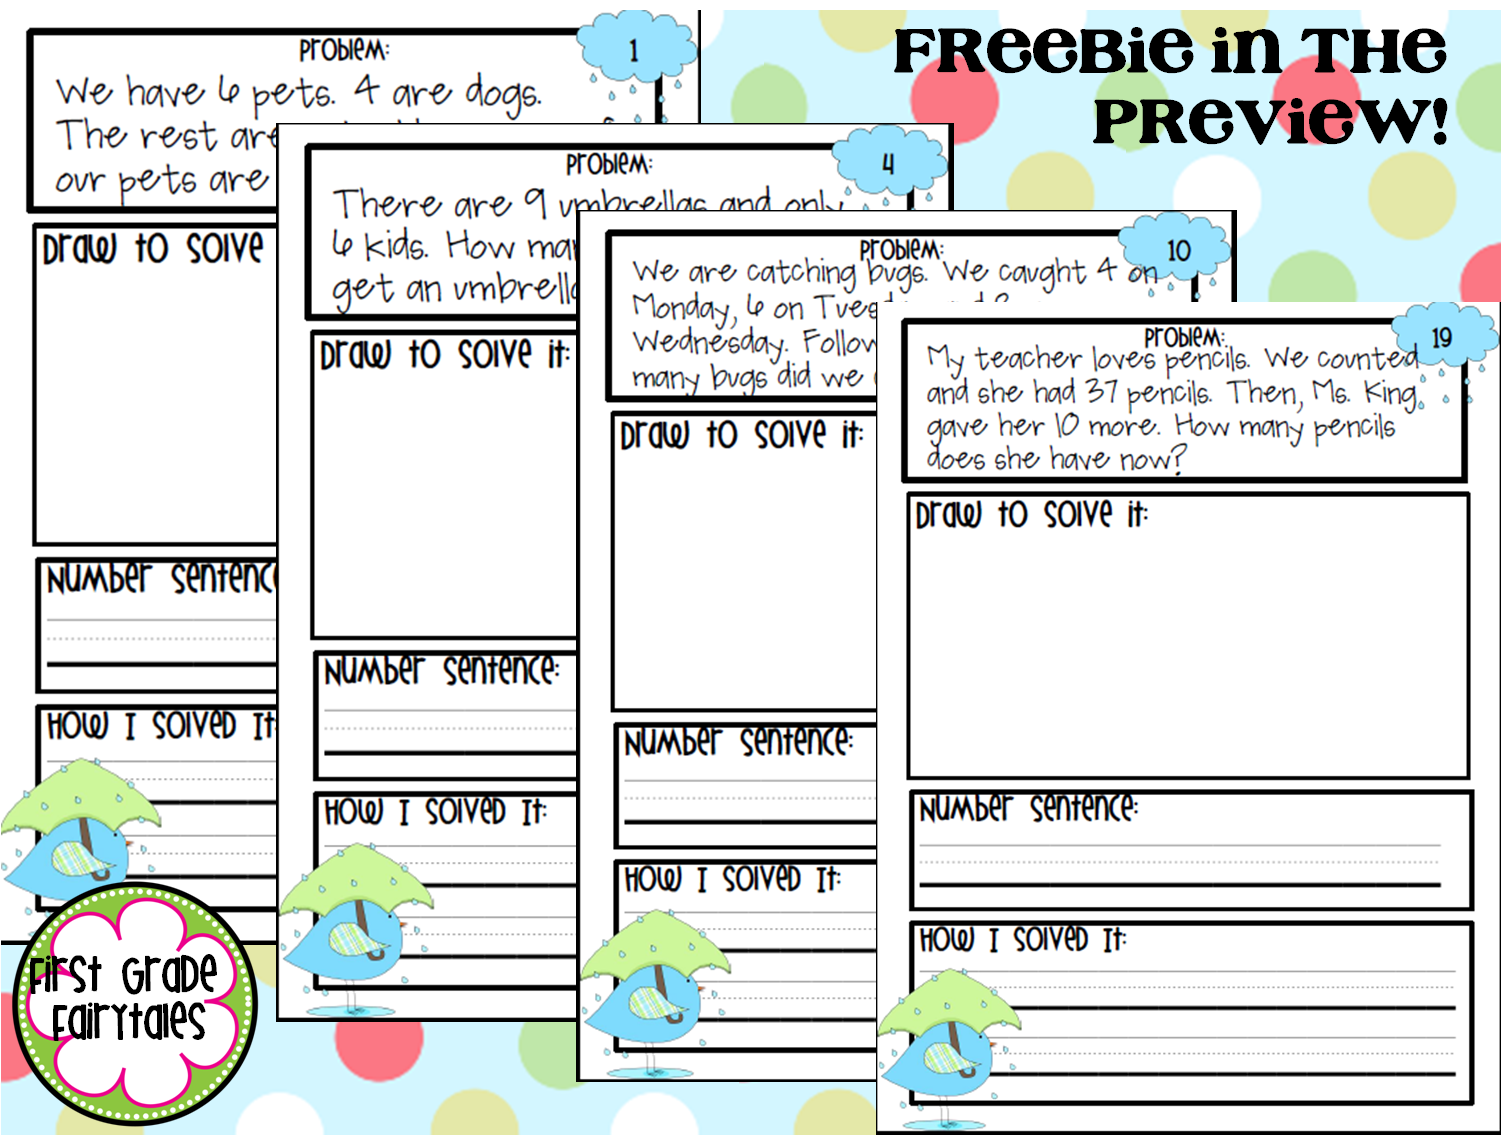 Workbooks inferencing worksheets grade 3 : First Grade Fairytales: Making Inferences & Problem of the Day FREEBIE